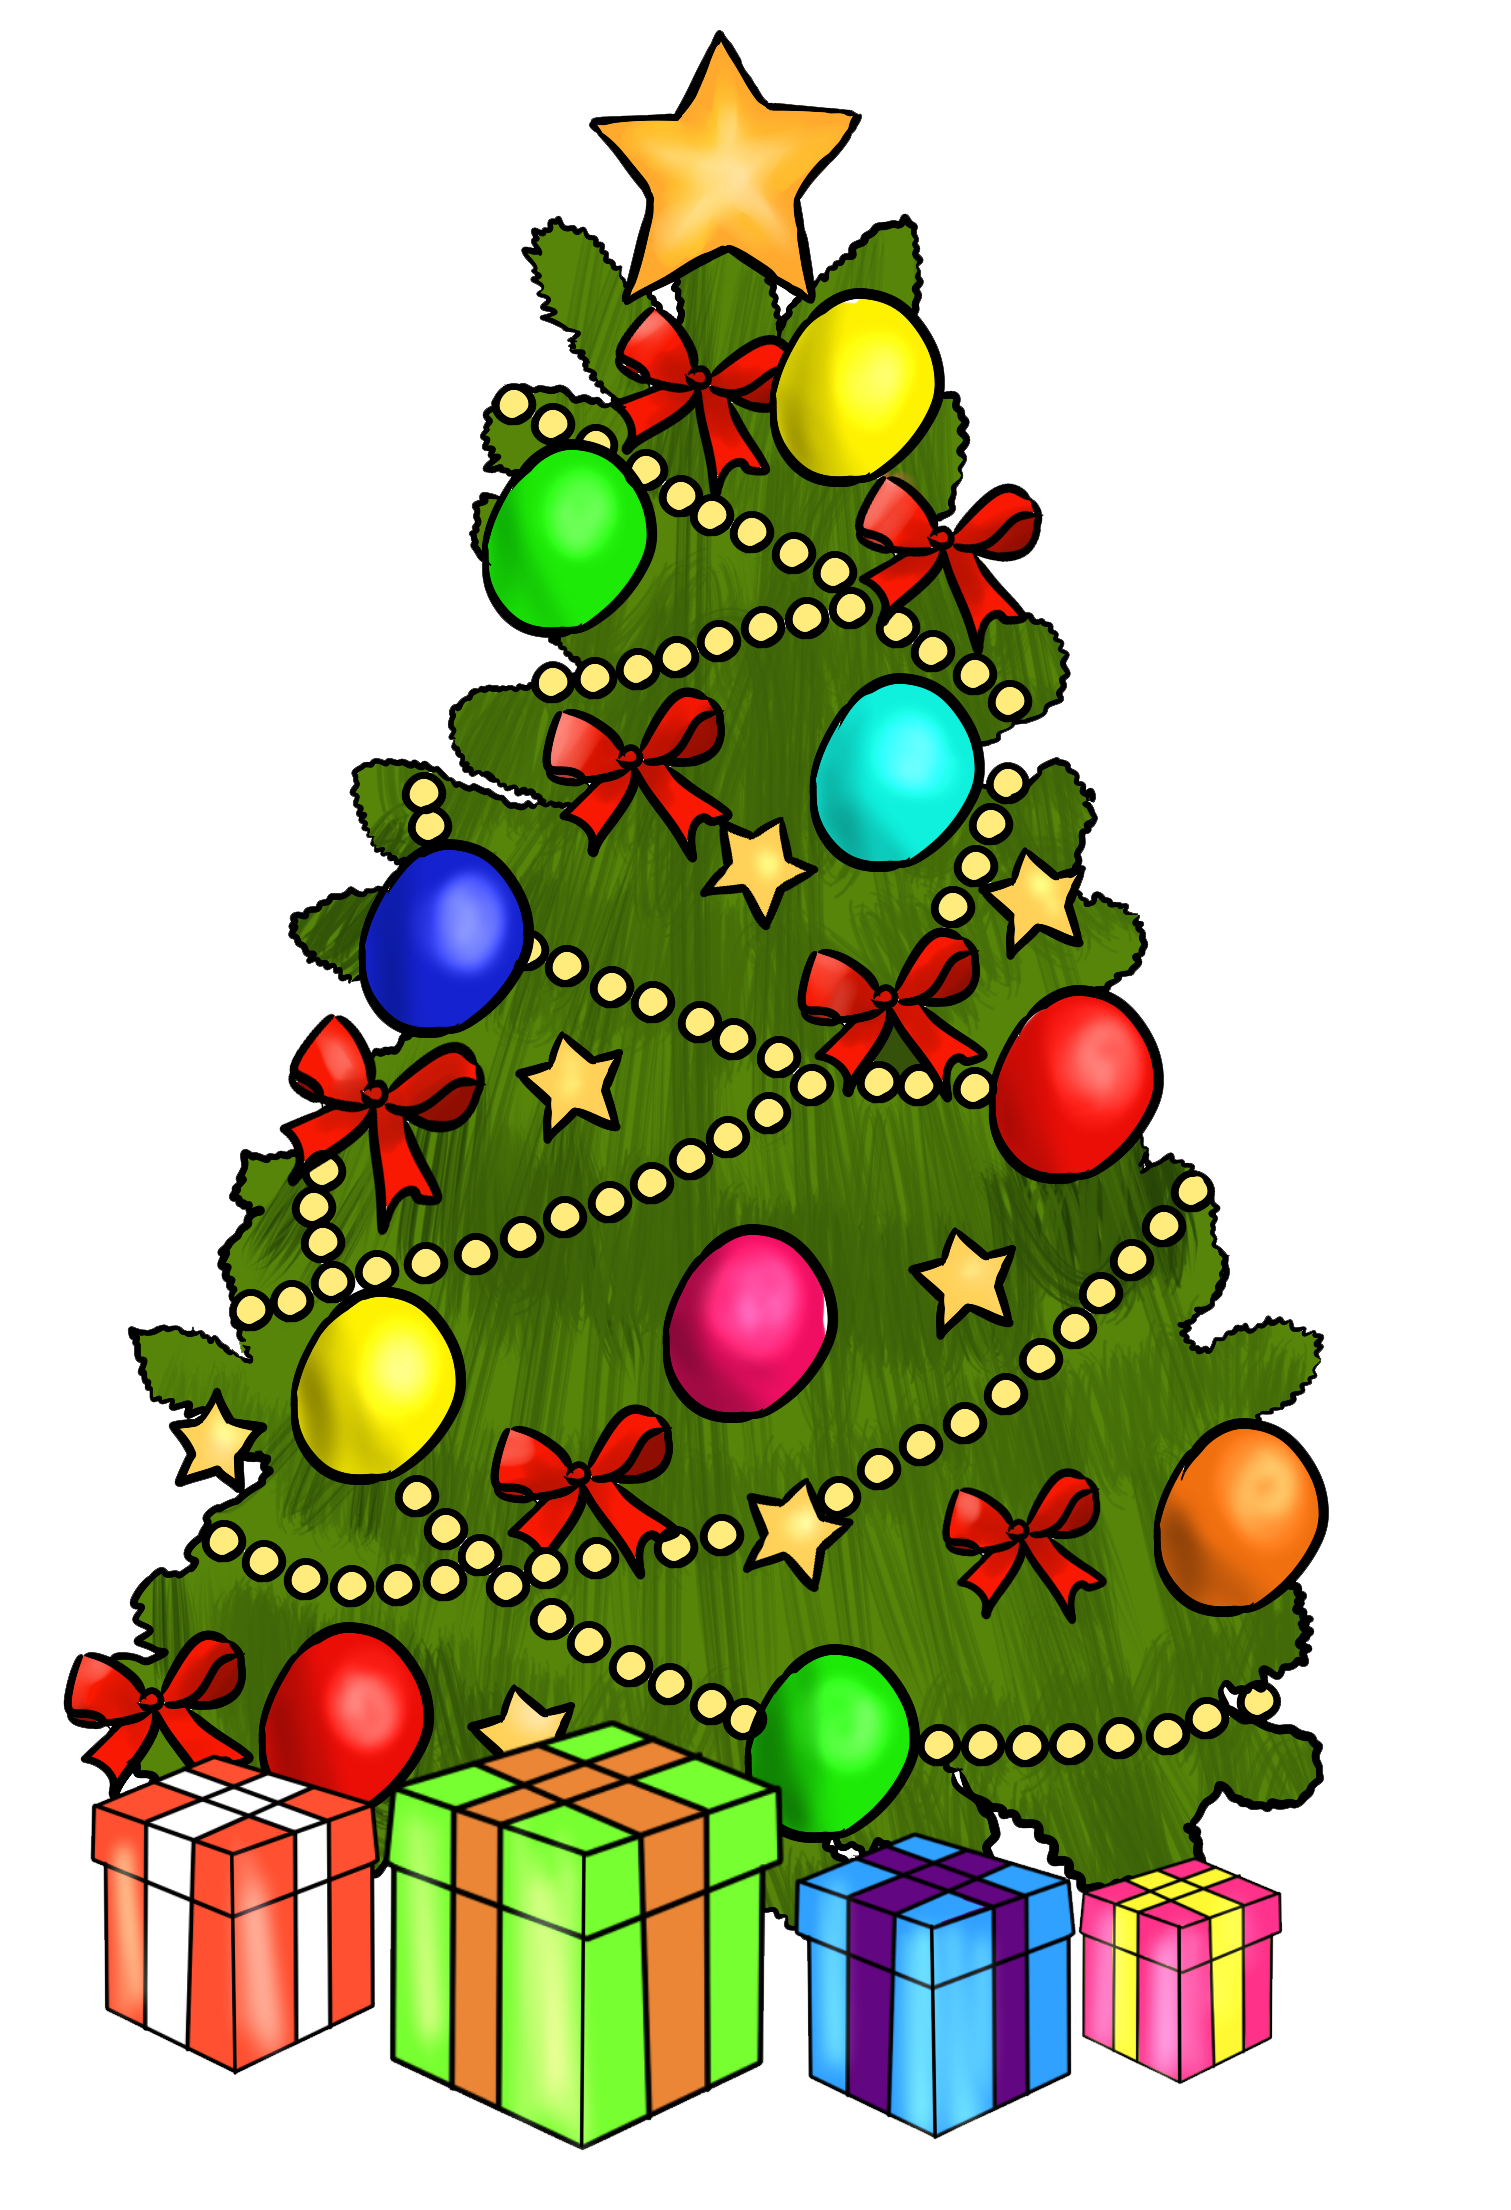 Clipart Of Christmas Presents - All About Clipart